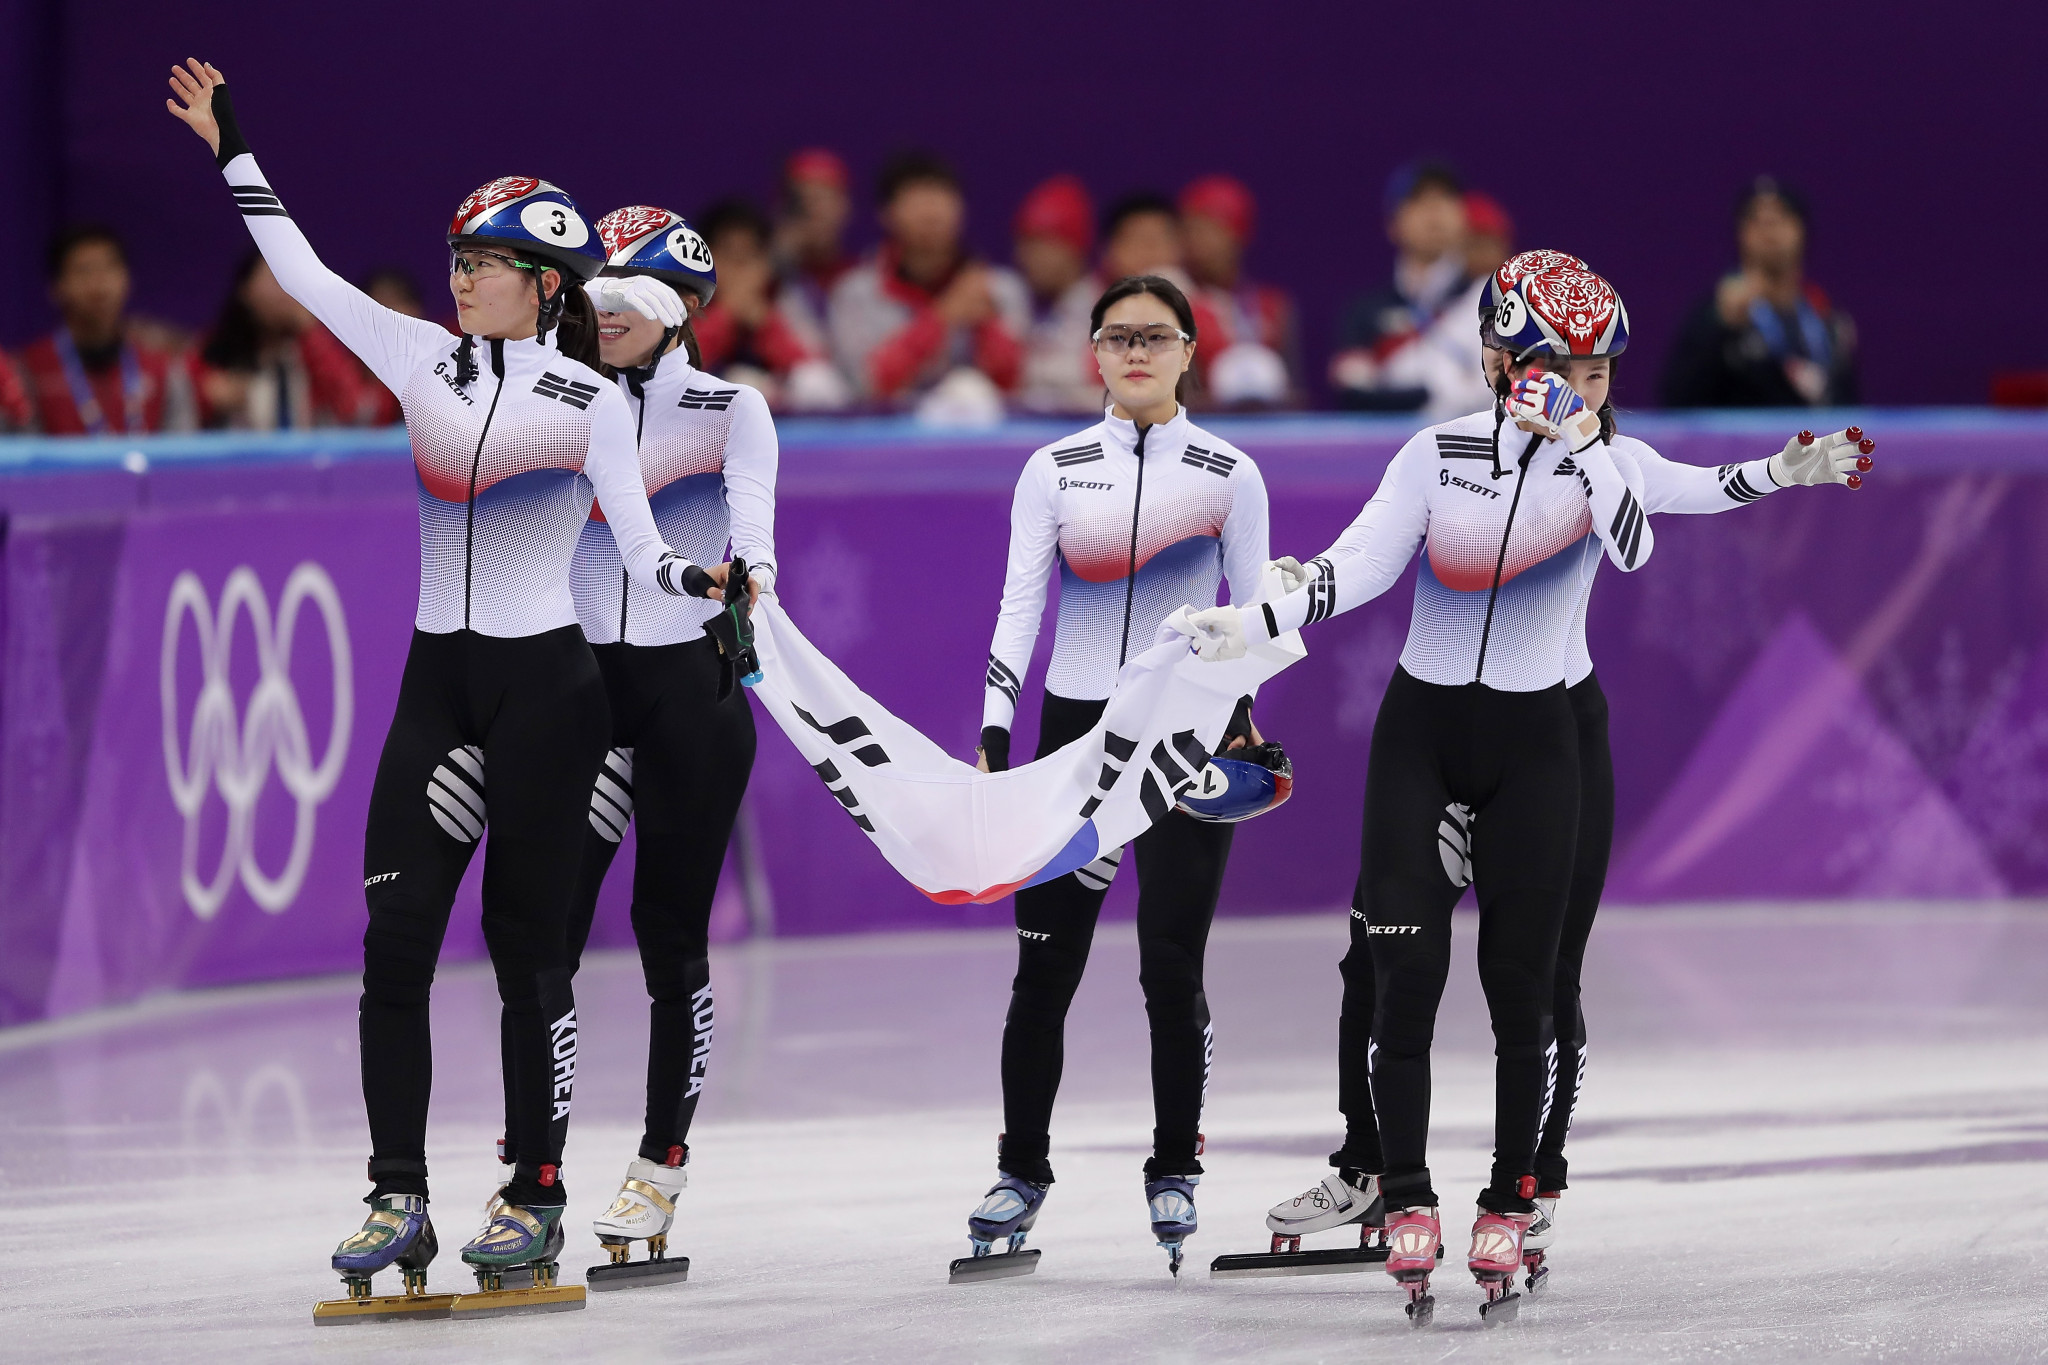 Hosts South Korea win women's short track relay at Pyeongchang 2018 as Italians and Dutch profit from disqualifications